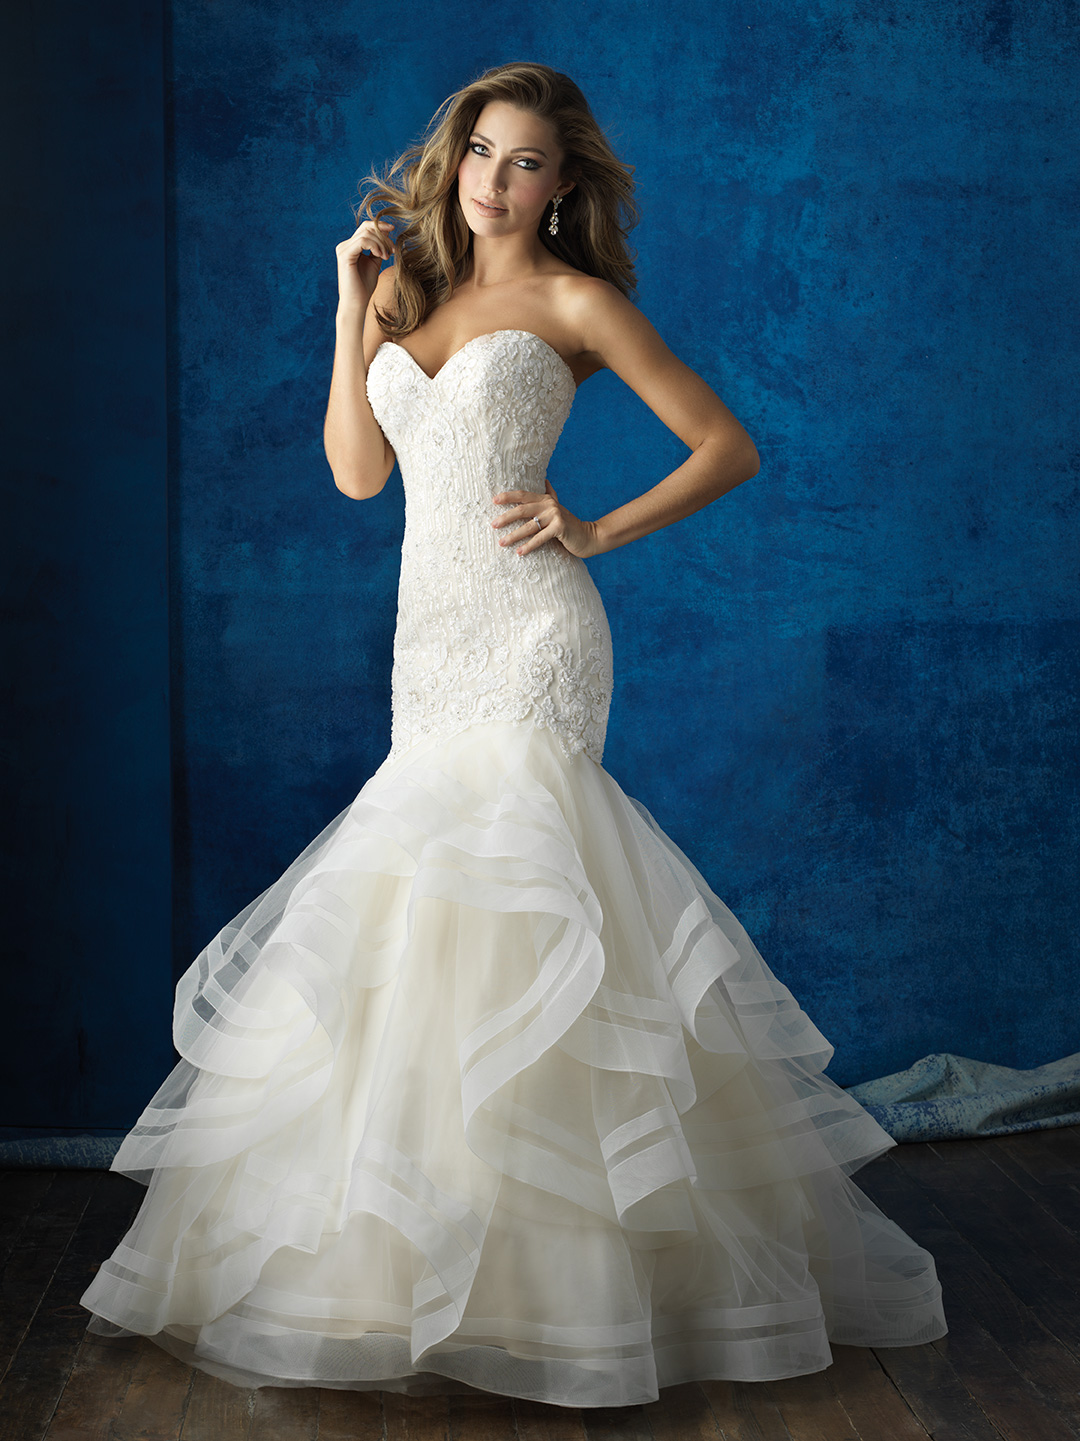 Strapless mermaid wedding dress with ruffer tail for bridal